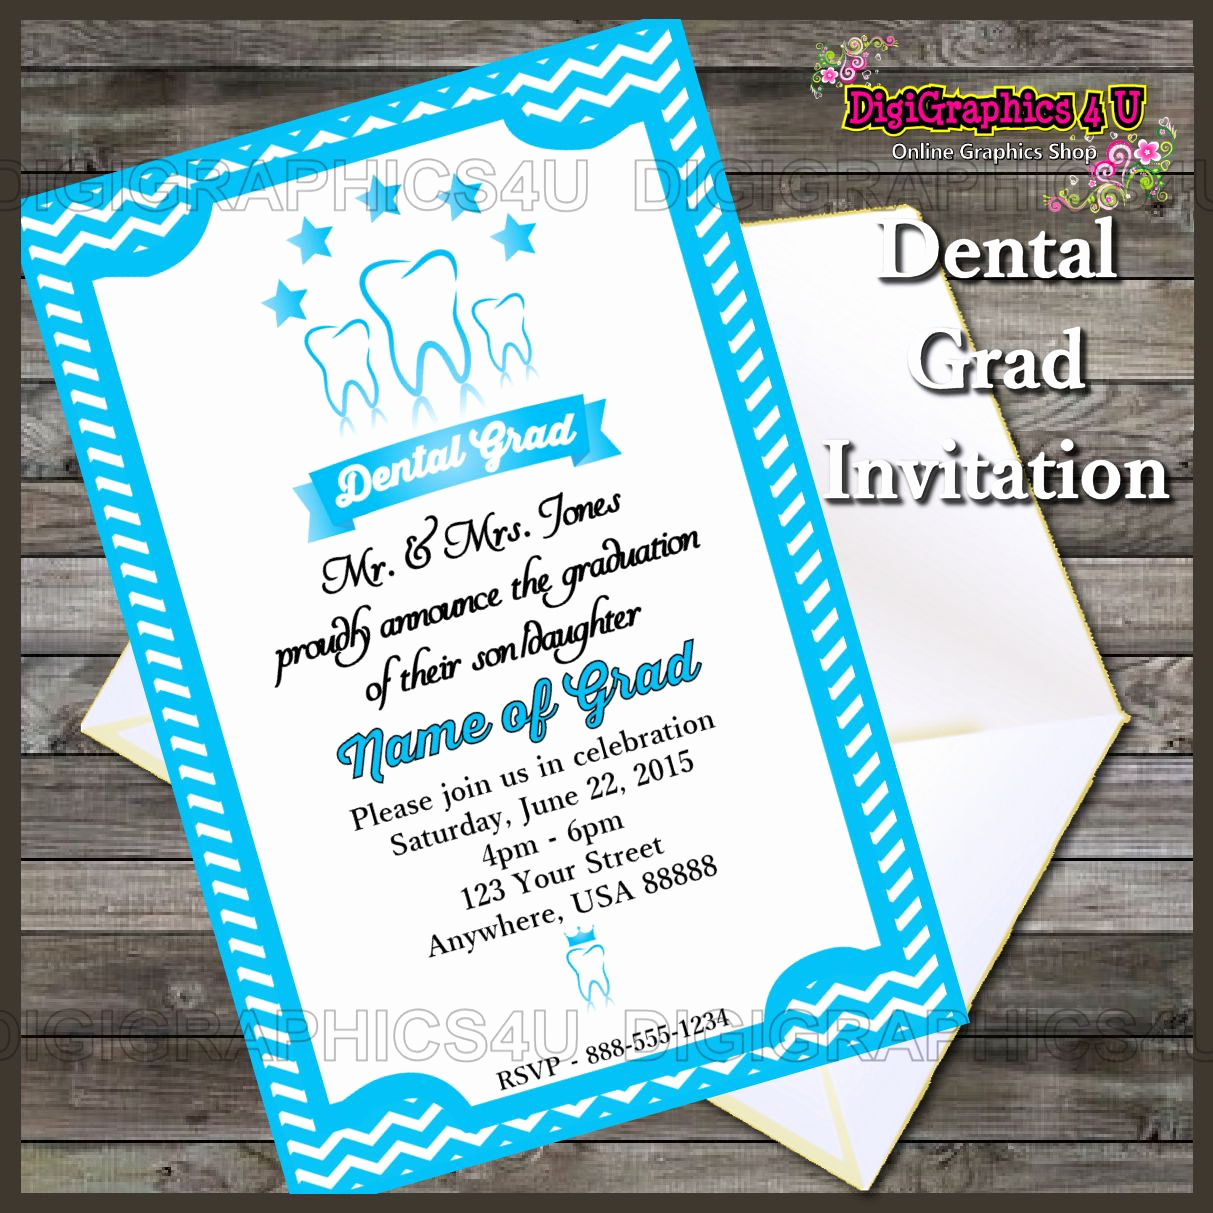 Graduation Party Invitation Wording Inspirational Printable Dental Graduation Party Invitation by Digigraphics4u